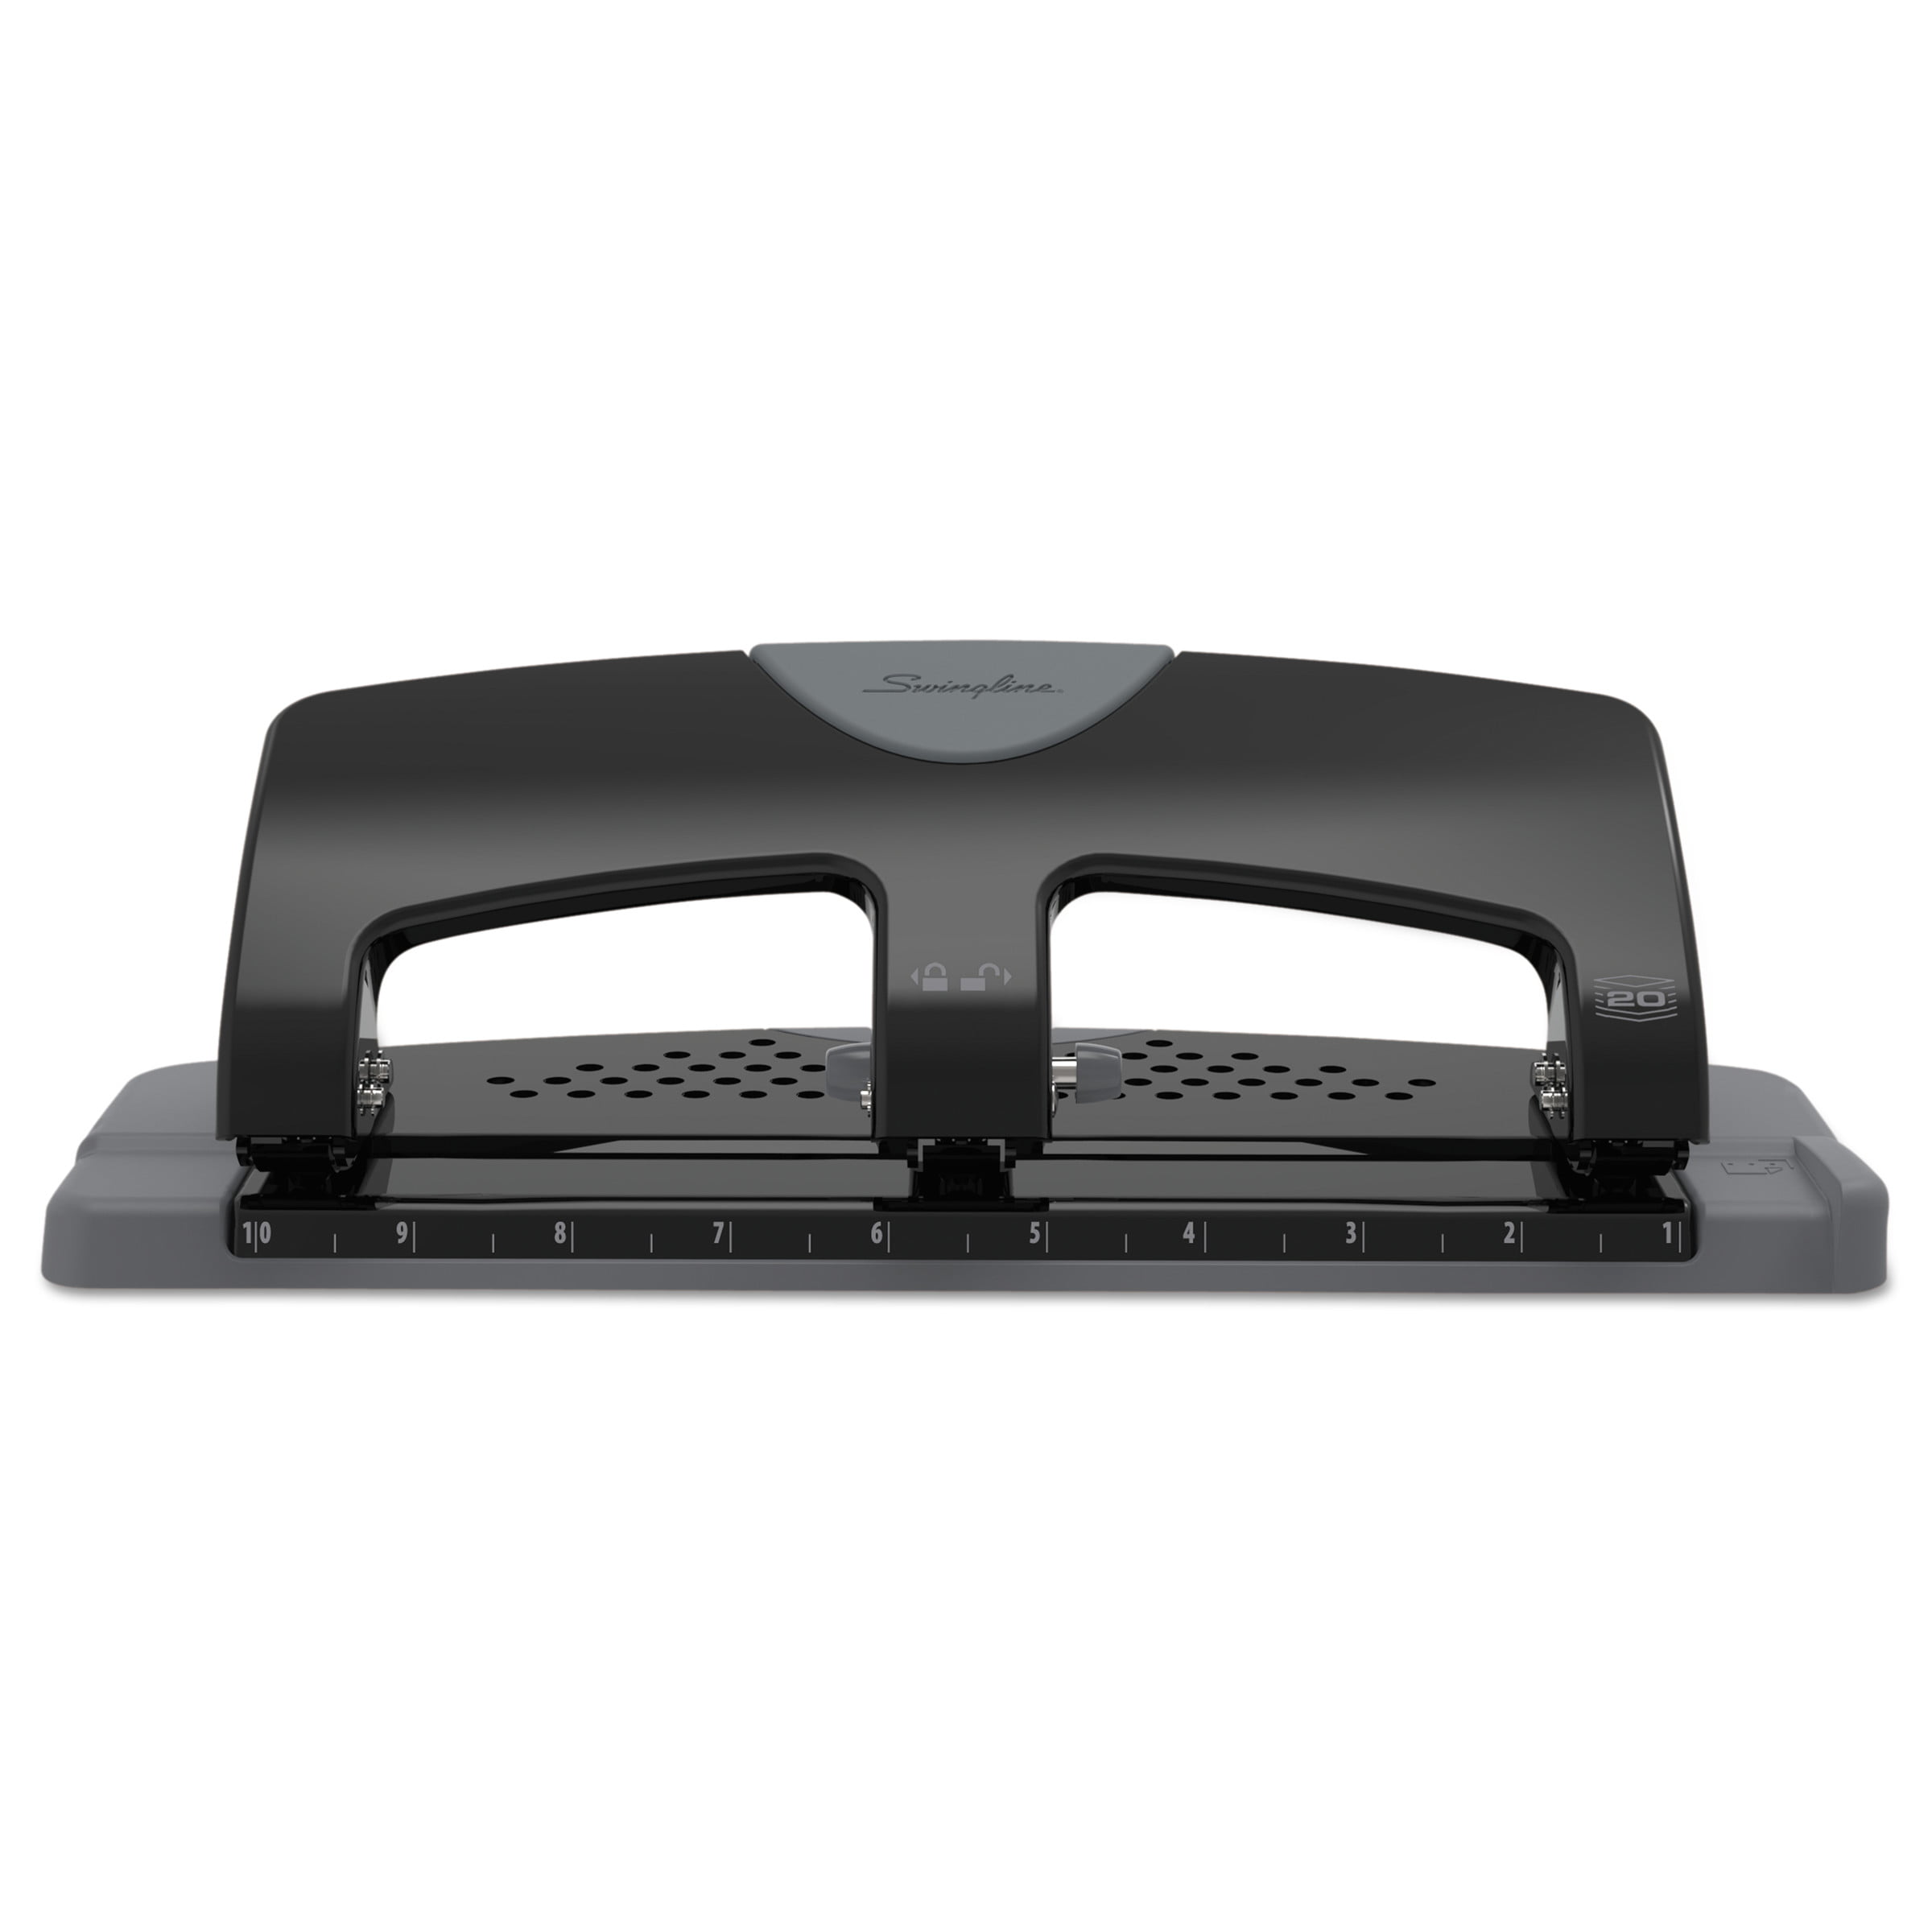 Swingline SmartTouch 2-hole Punch REDUCED Effort 20 Sheet Capacity A7074135 for sale online